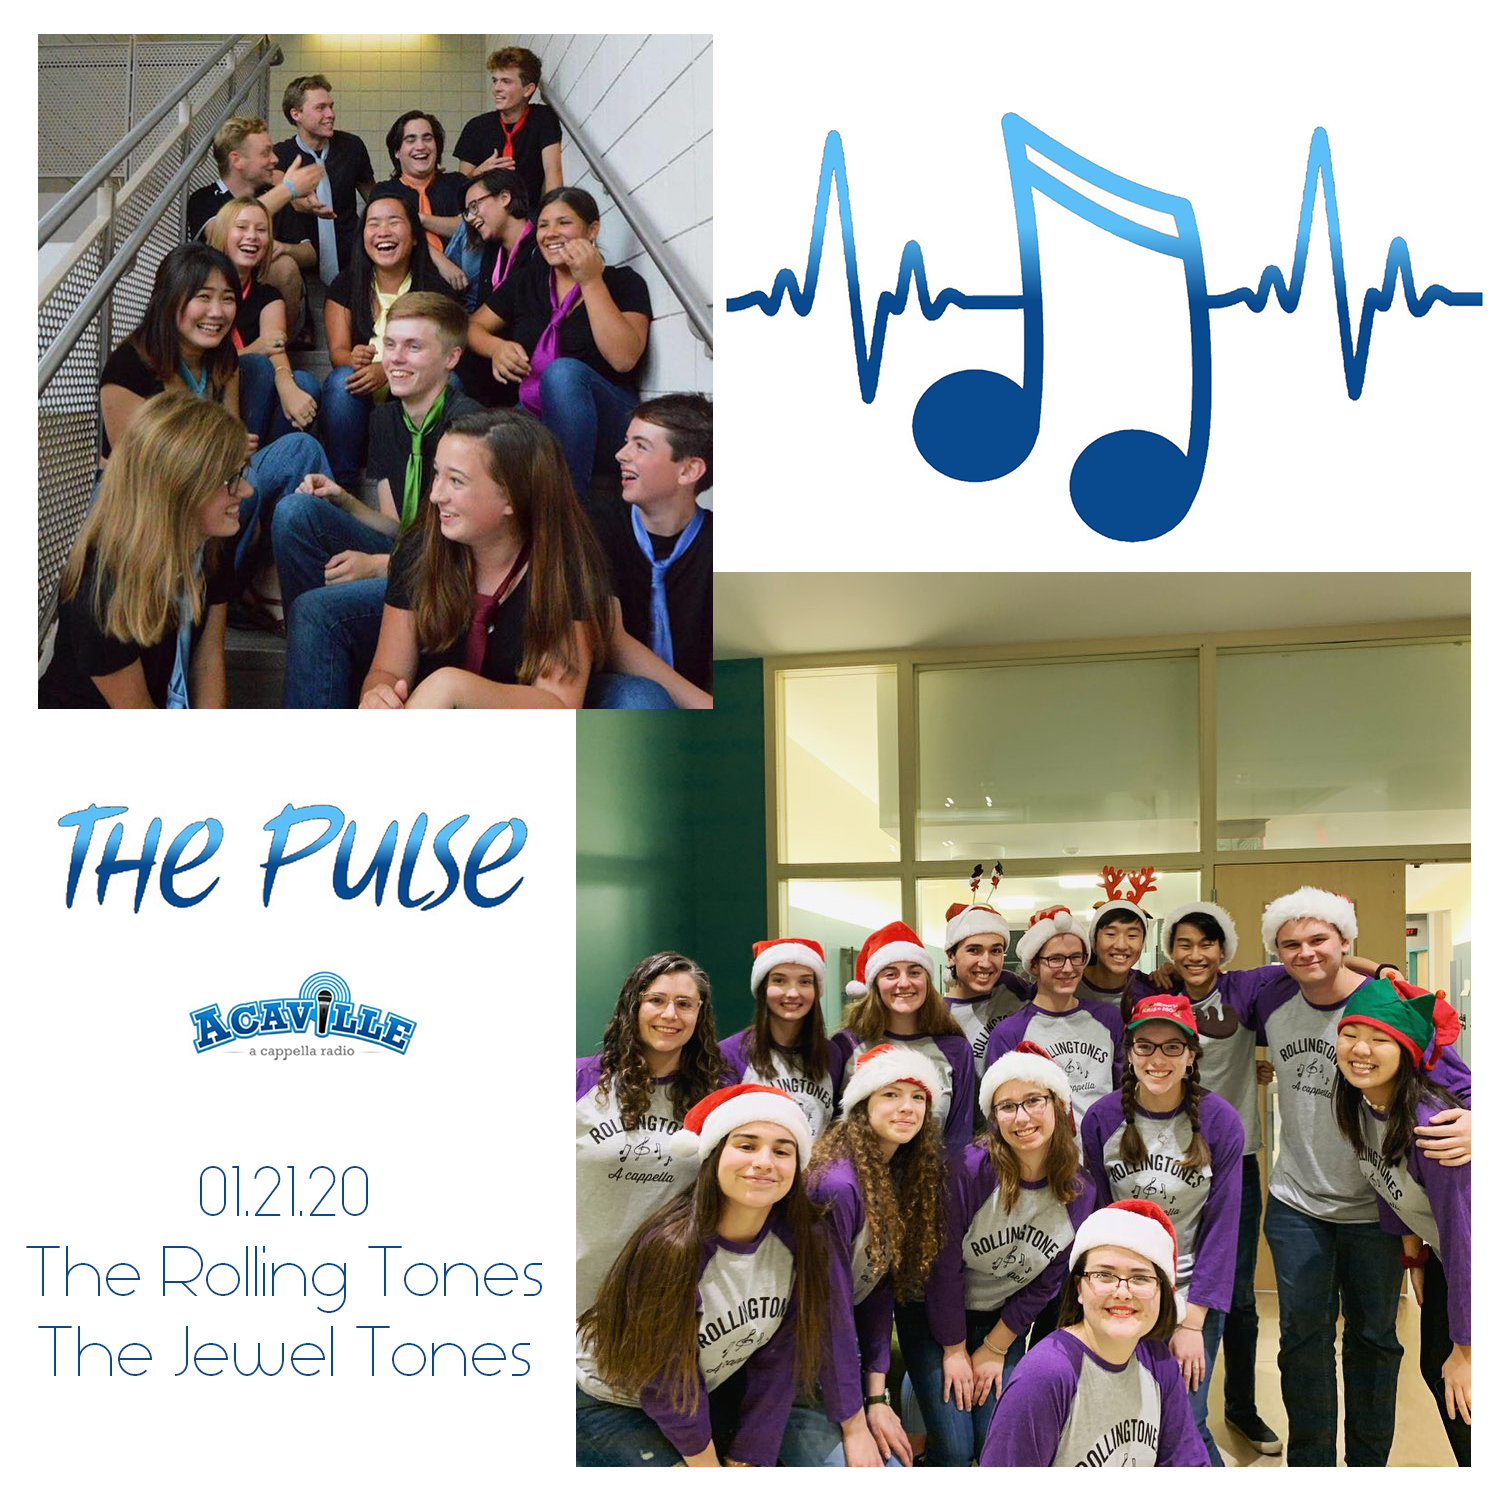 The Pulse 01.21.20